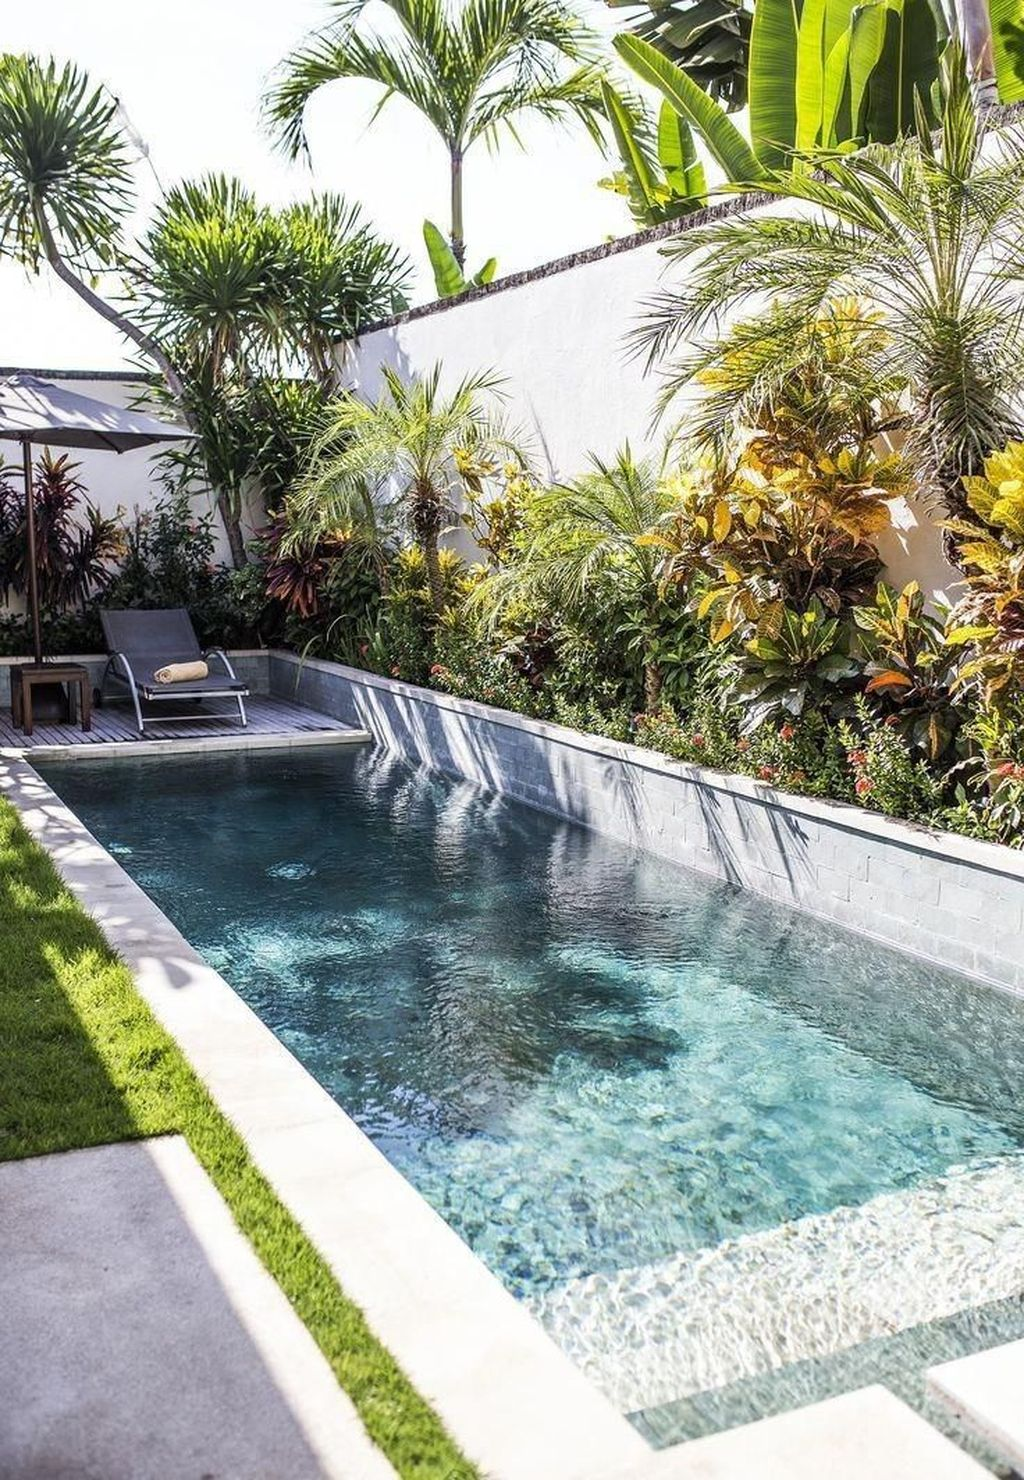 Fabulous Backyard Pool Landscaping Ideas You Never Seen Before 33